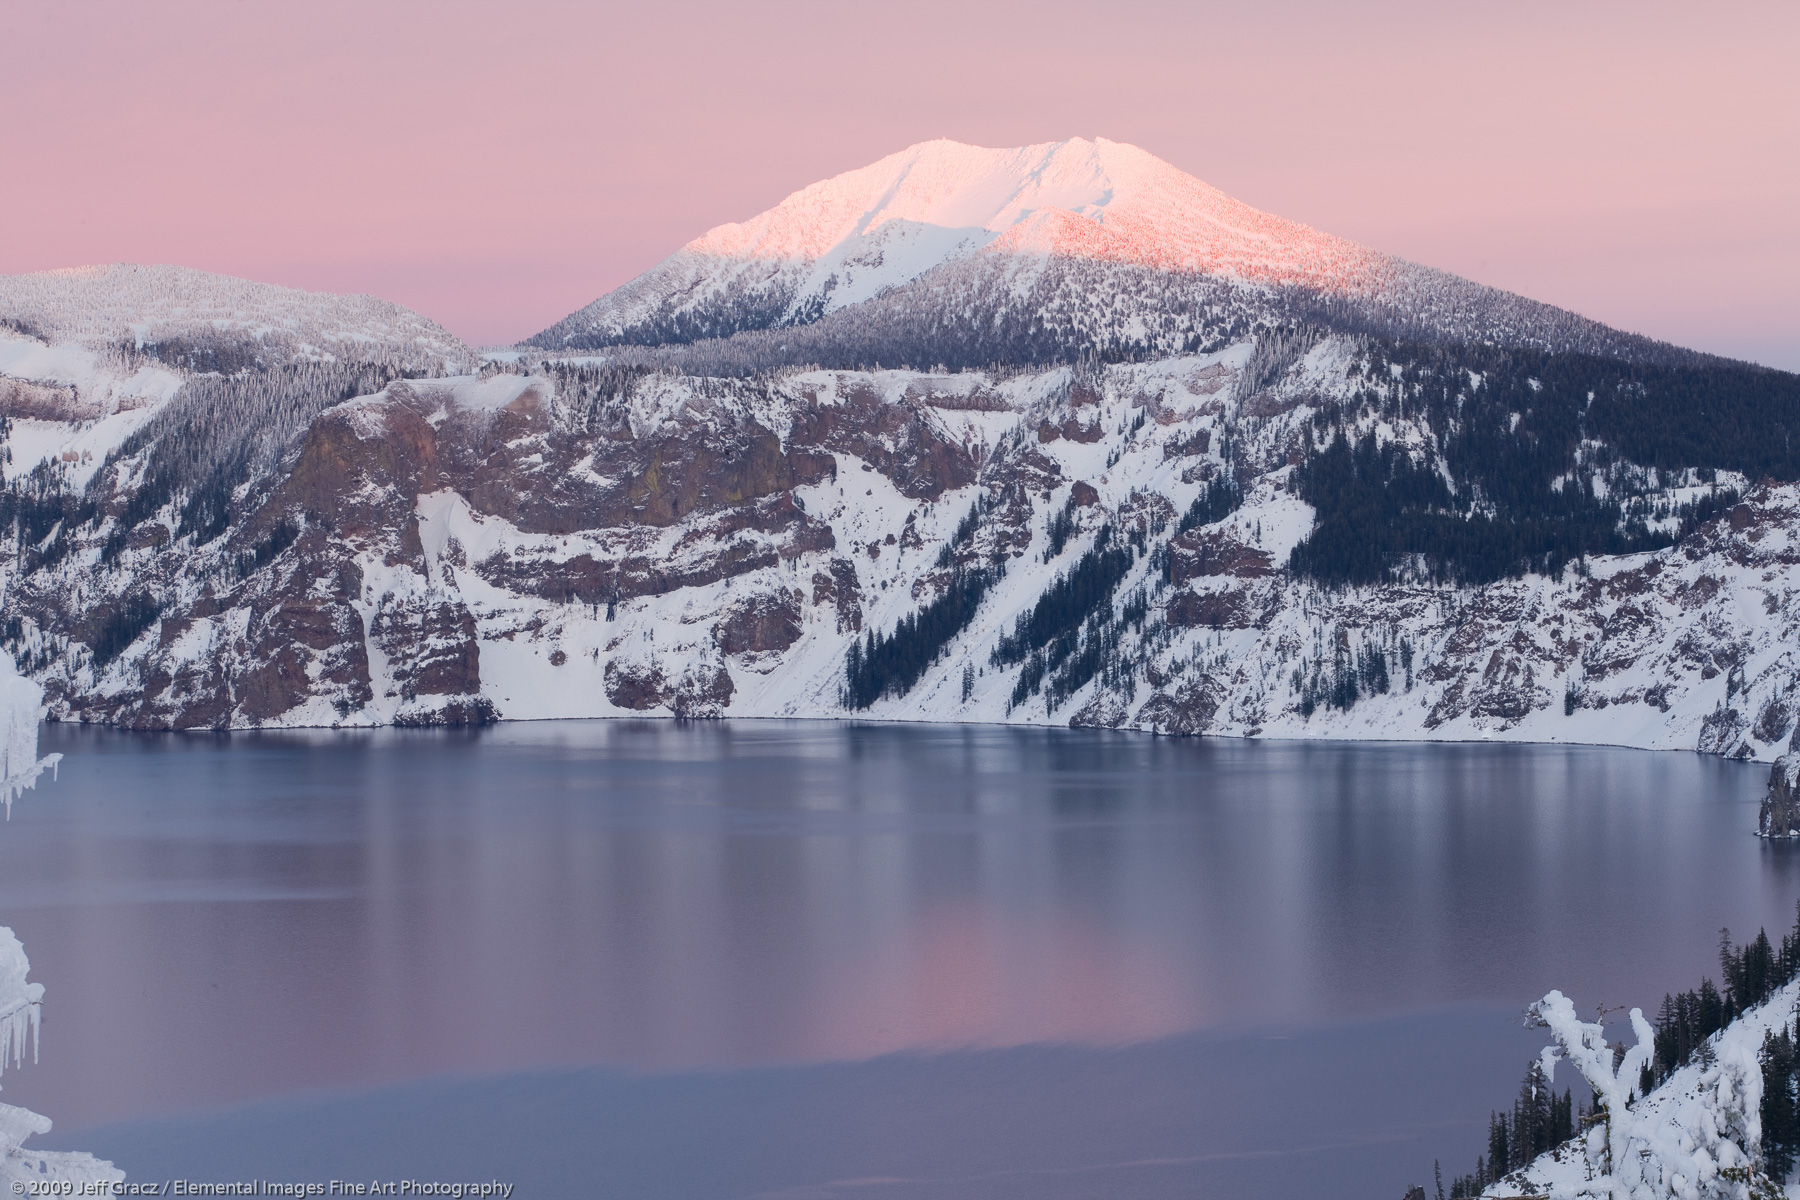 Mt Scott from Crater Lake in Evening Light | Crater Lake National Park | OR | USA - © © 2009 Jeff Gracz / Elemental Images Fine Art Photography - All Rights Reserved Worldwide